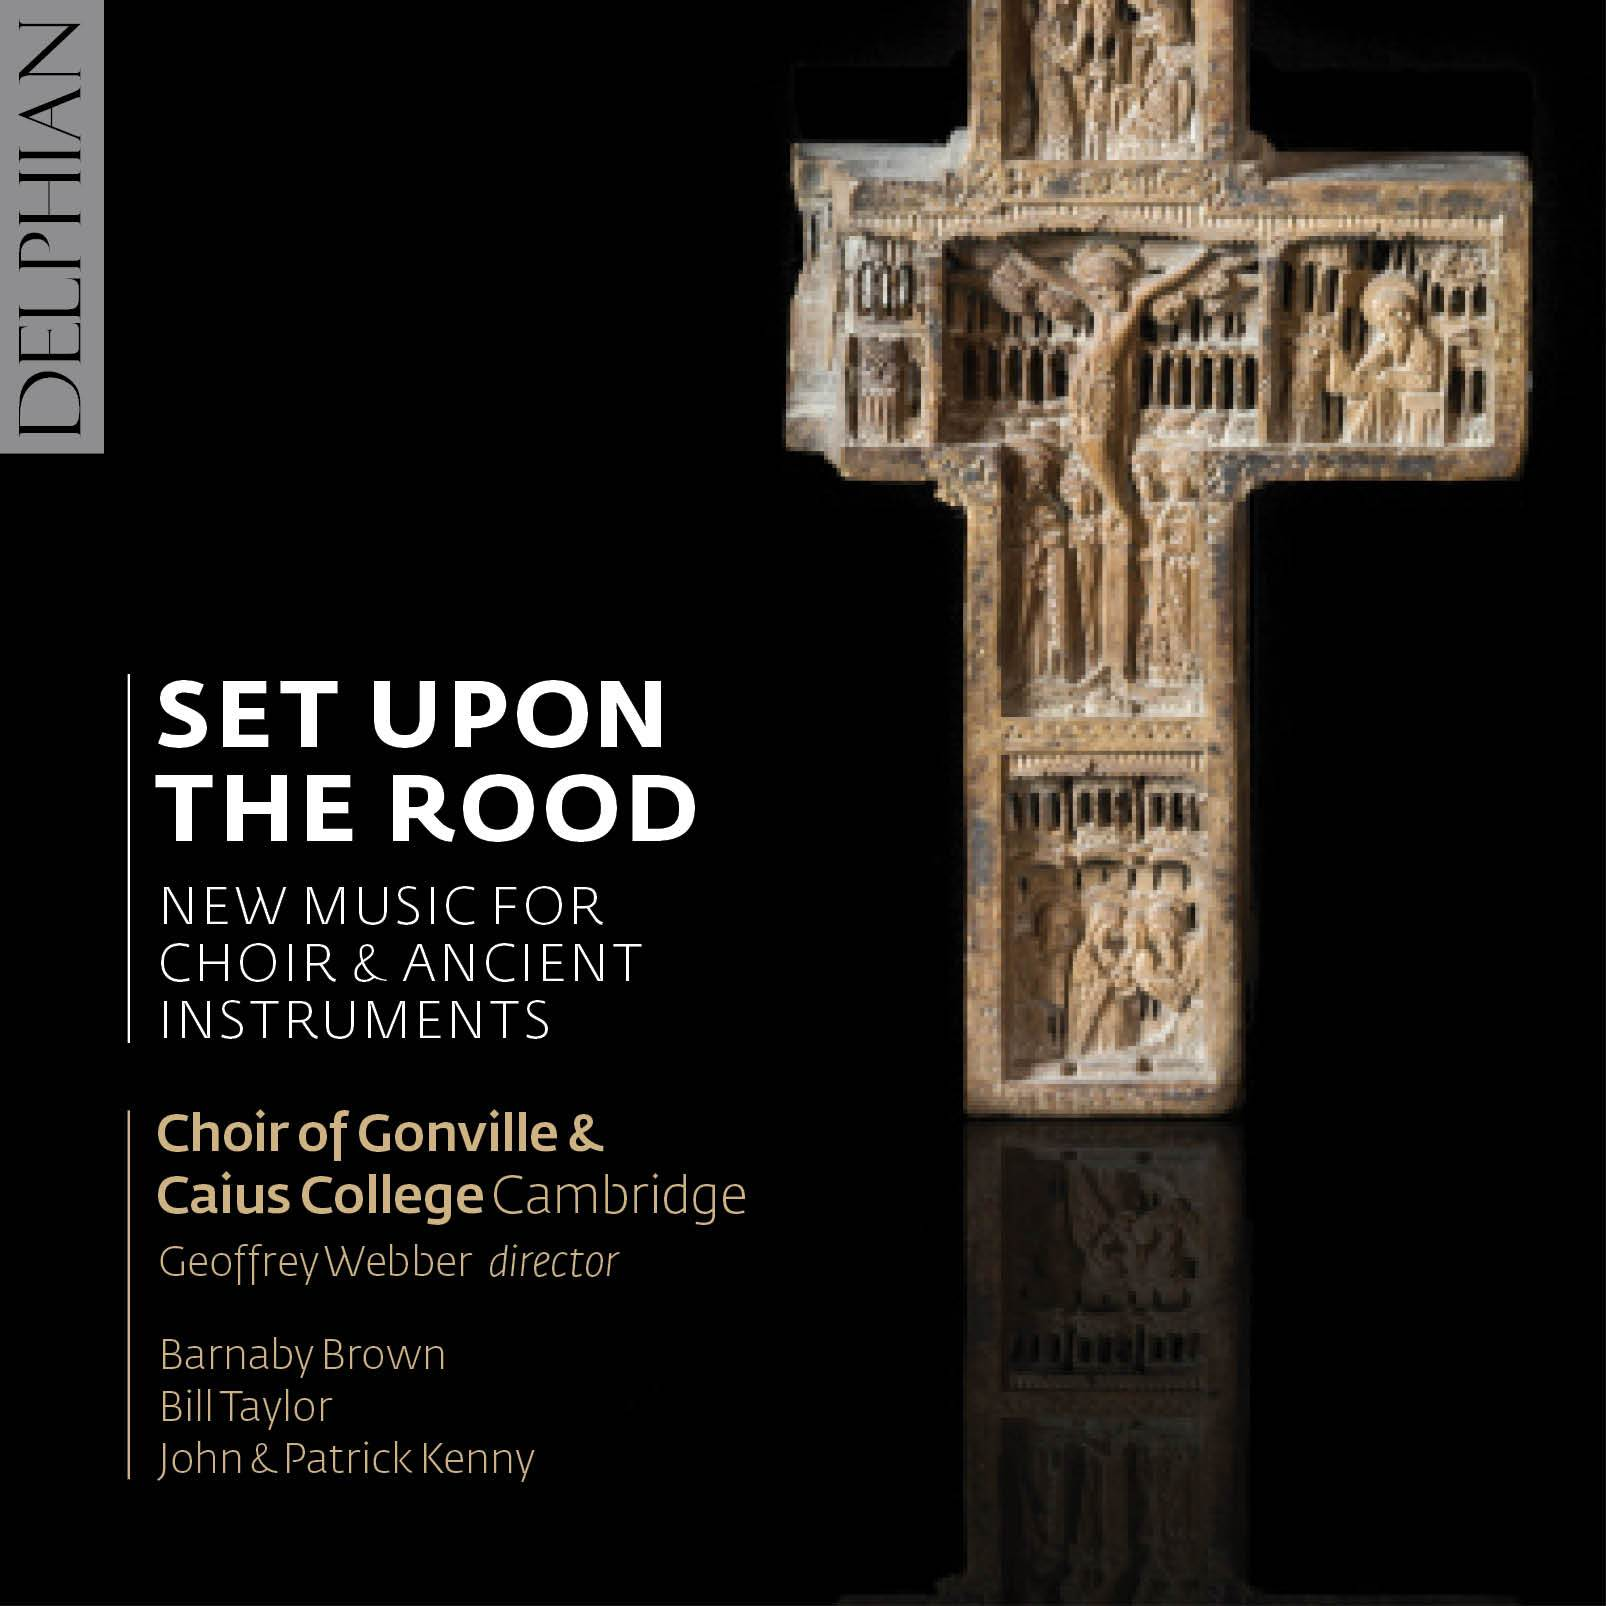 Set upon the Rood: new music for choir & ancient instruments CD Delphian Records